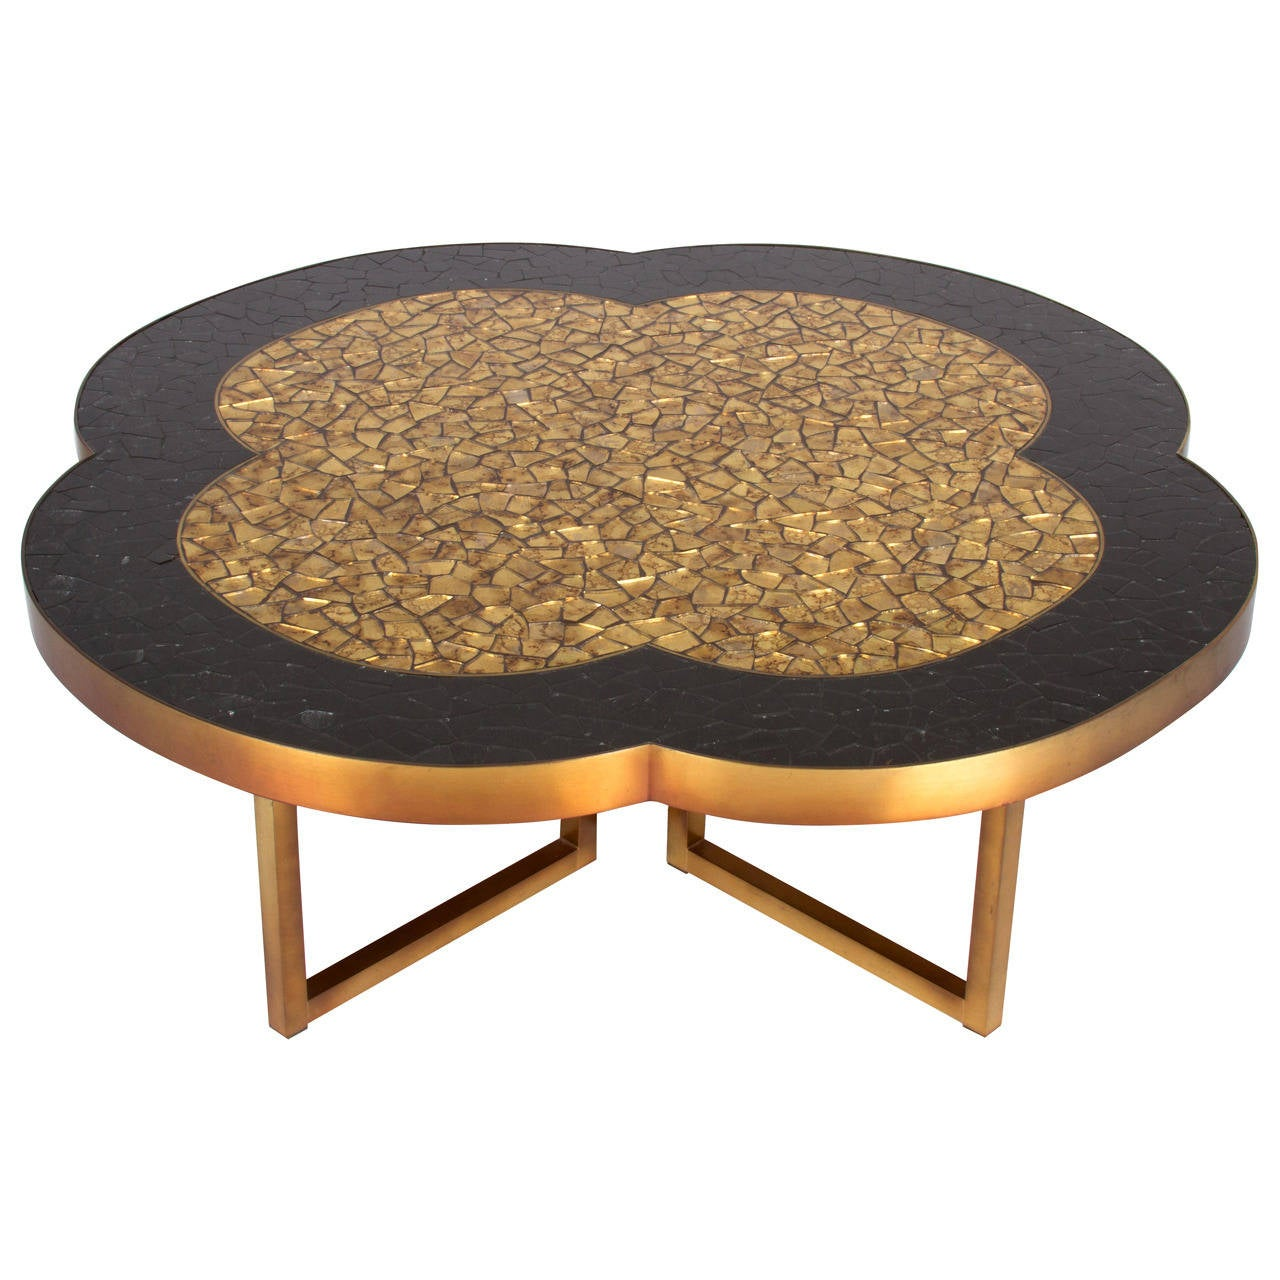 Gold leaf, brass and black glass mosaic quatrefoil coffee table, 1950s